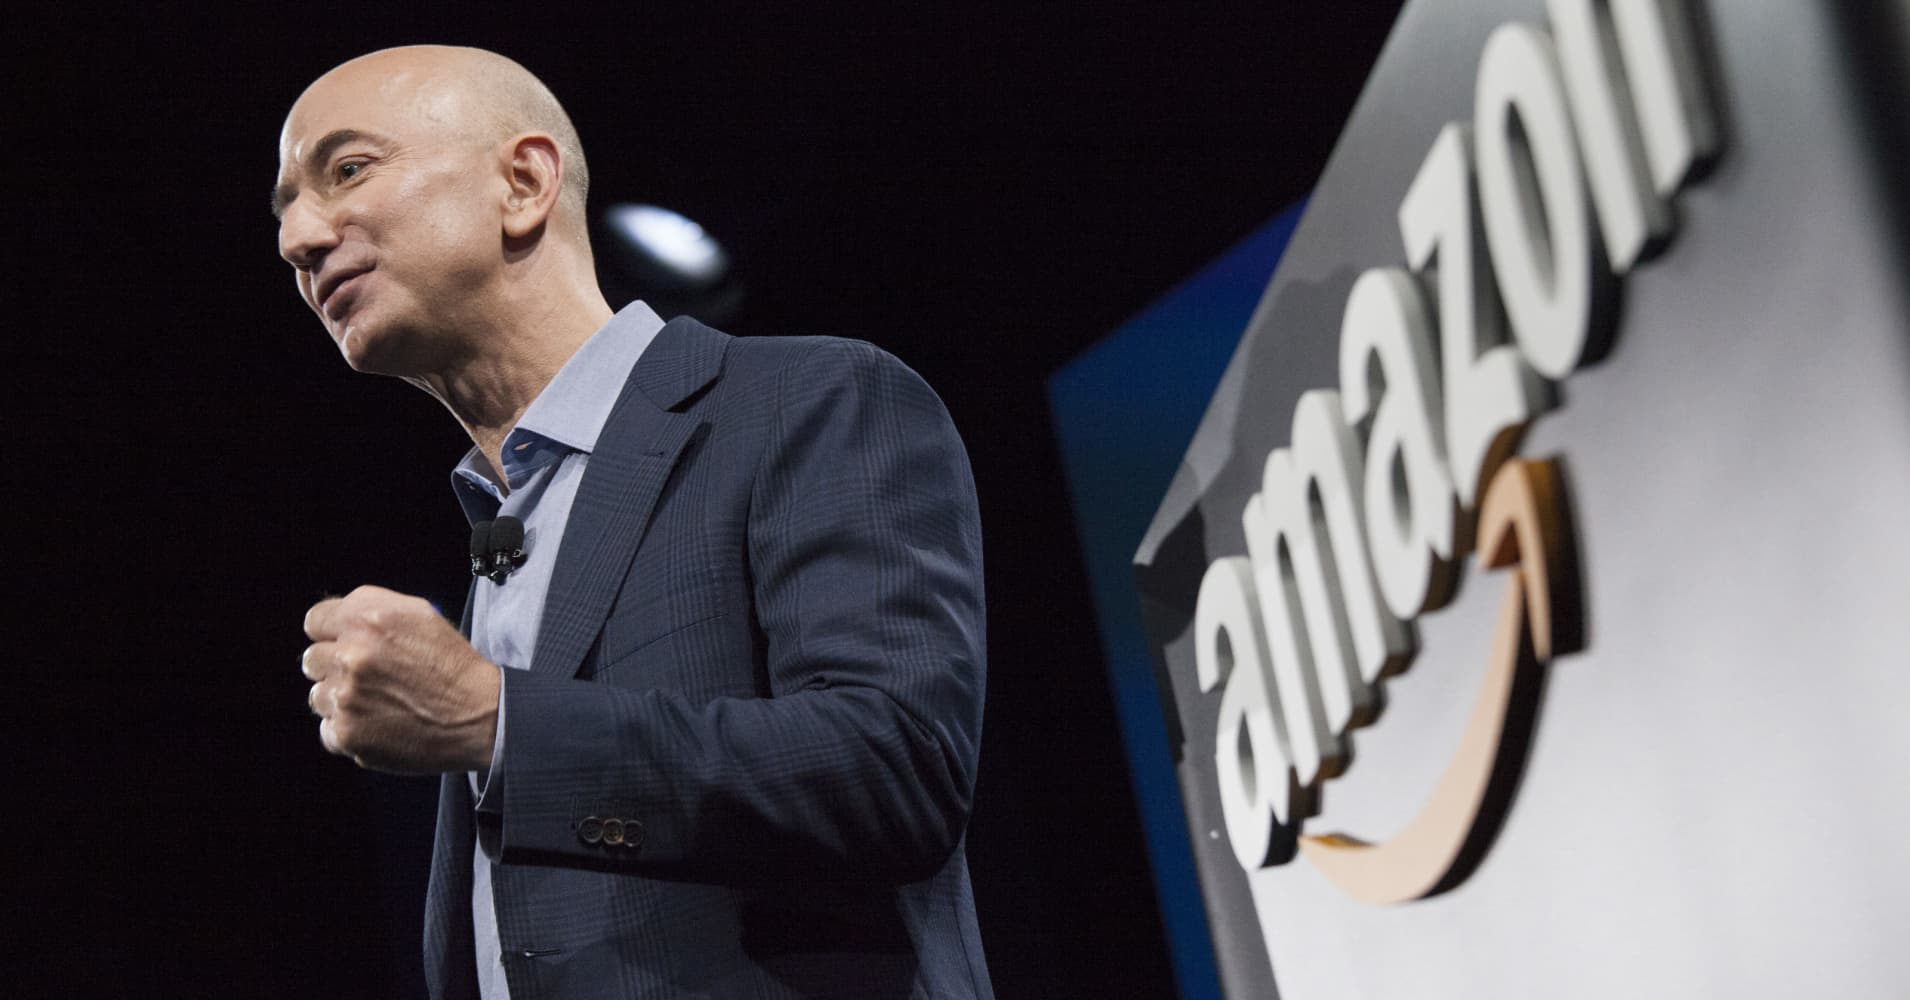 Amazon CEO Jeff Bezos is sizing up locations for its second US headquarters. Among the criteria: convenient access to mass transit and an international airport, a highly educated labor pool, a strong university system and a diverse population.